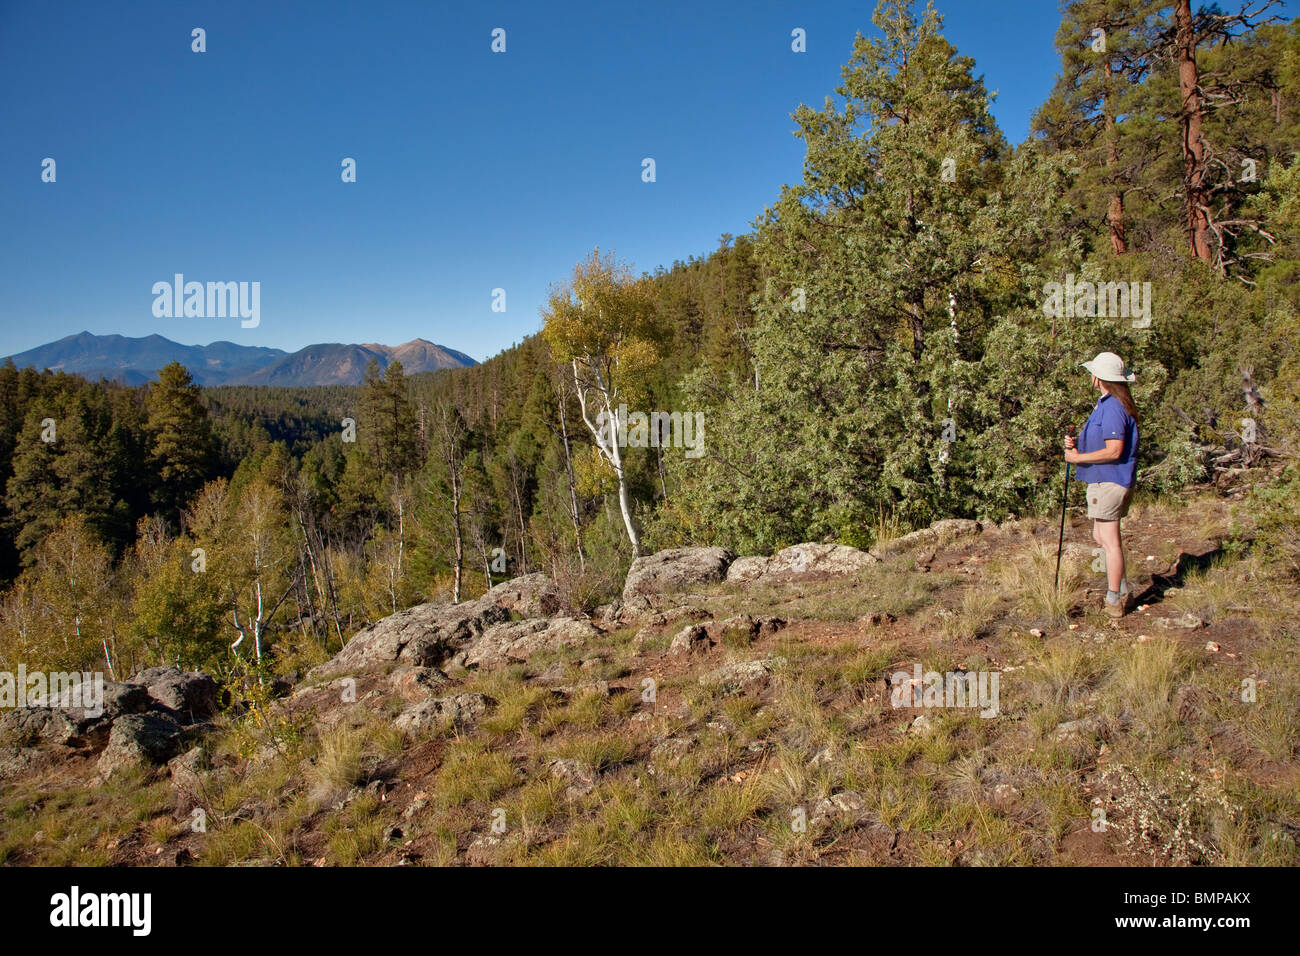 Hiker pauses along Arizona National Scenic Trail on Anderson Mesa, San Francisco Peaks in distance, Flagstaff, Arizona, - Stock Image